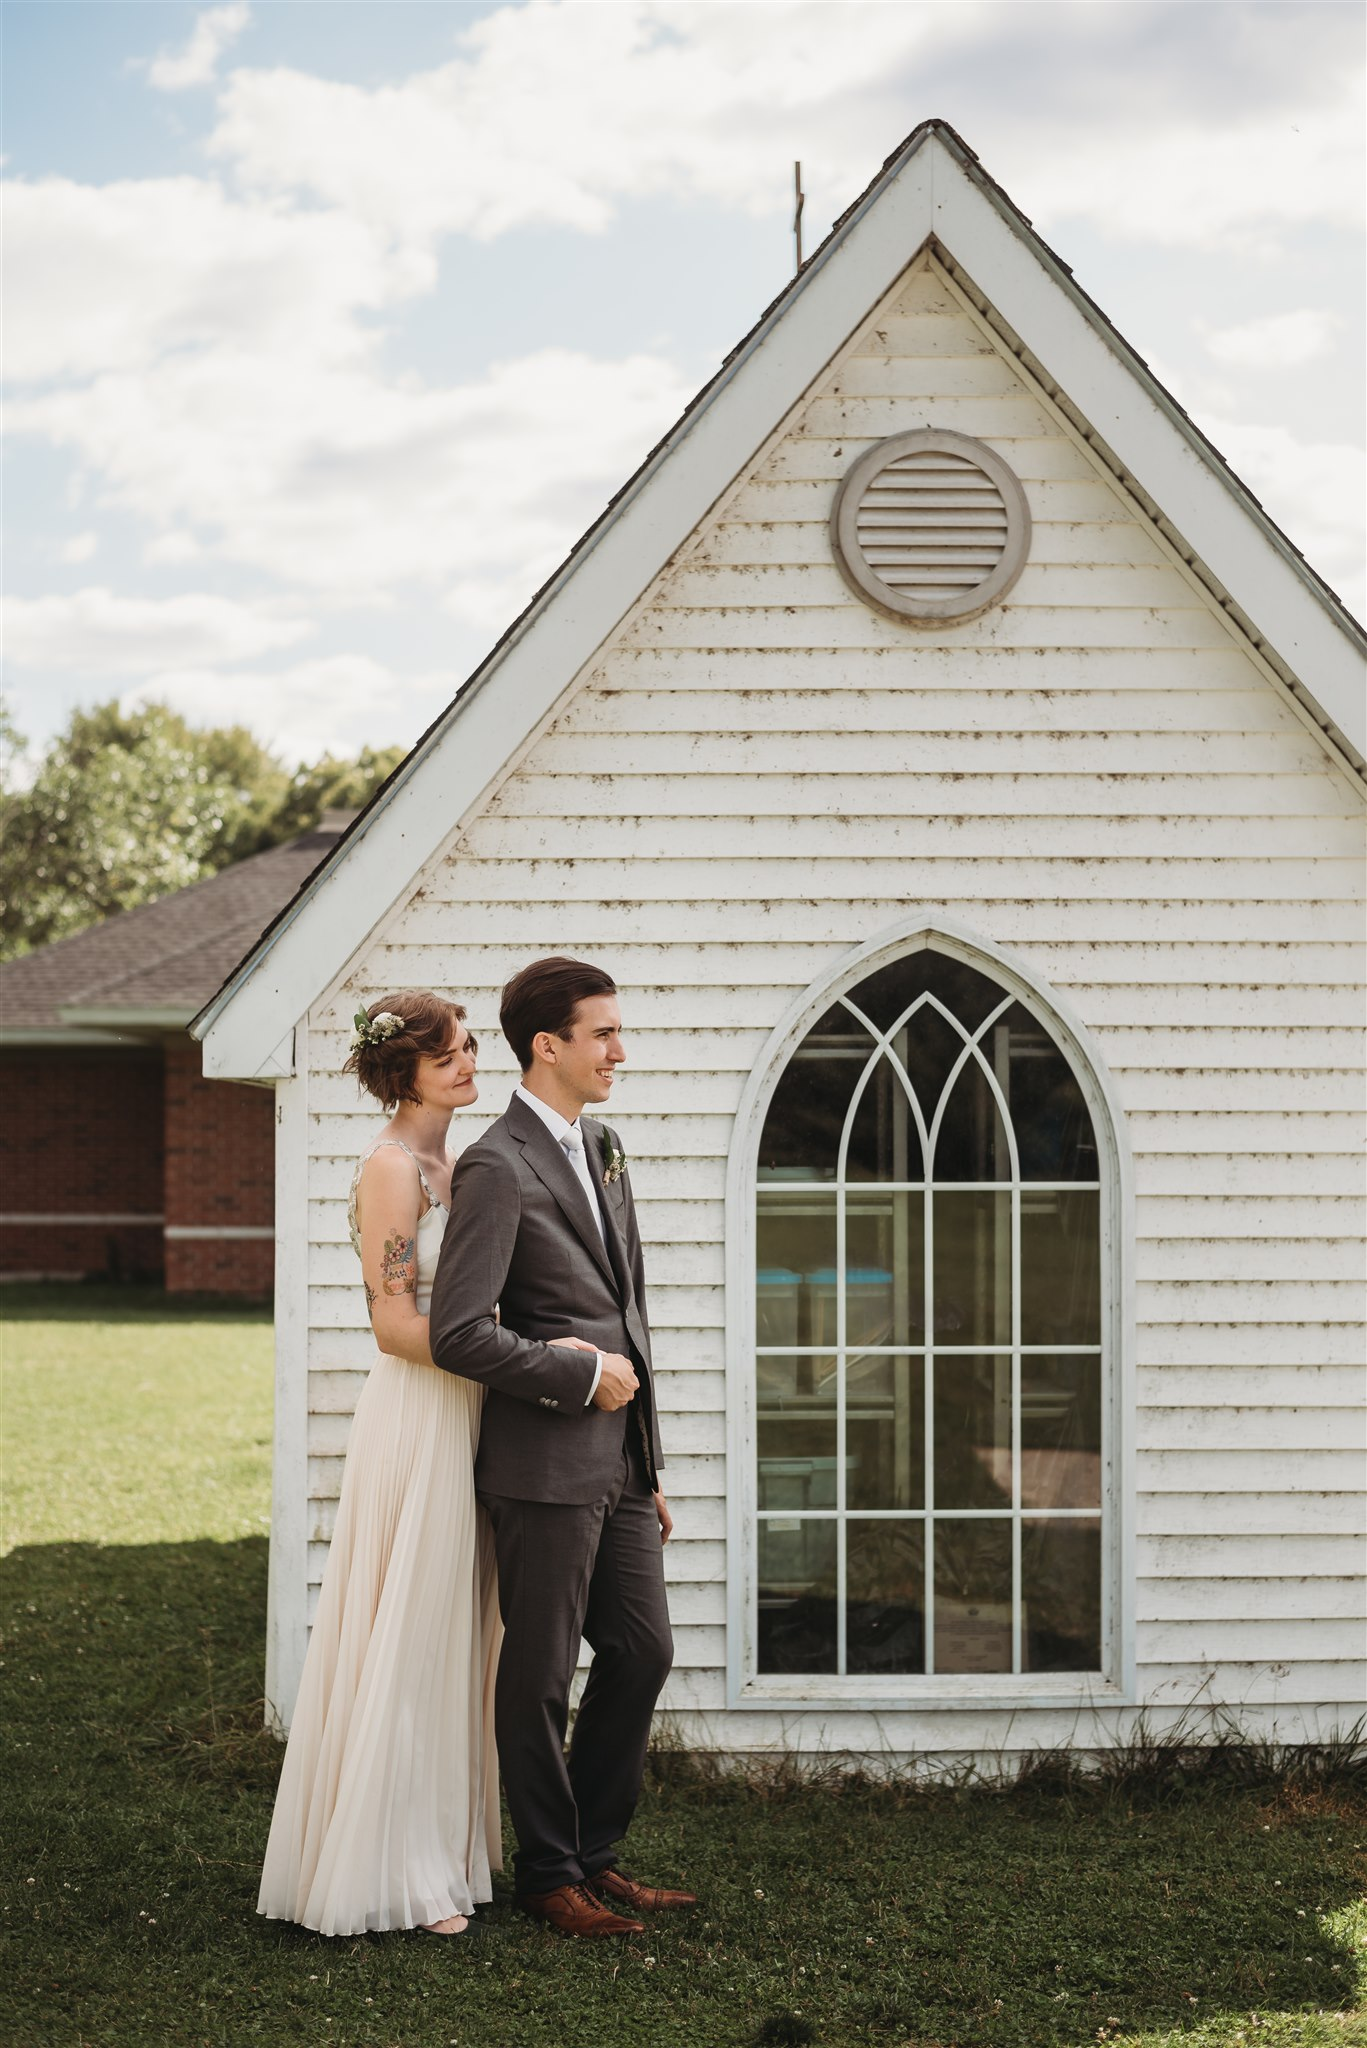 couple posing next to little church building